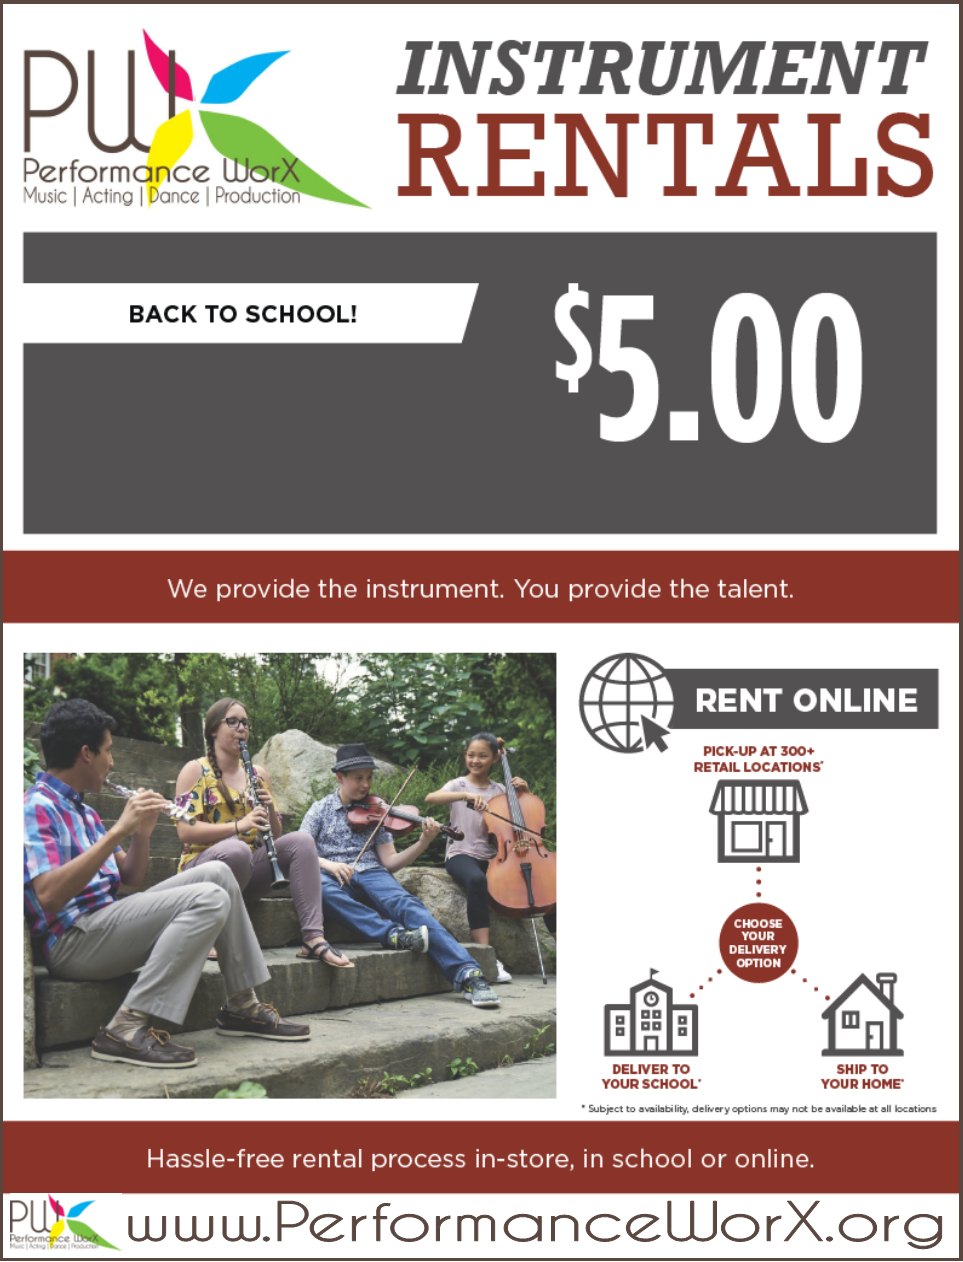 CLICK IMAGE  TO NAVIGATE TO RENTAL PAGE